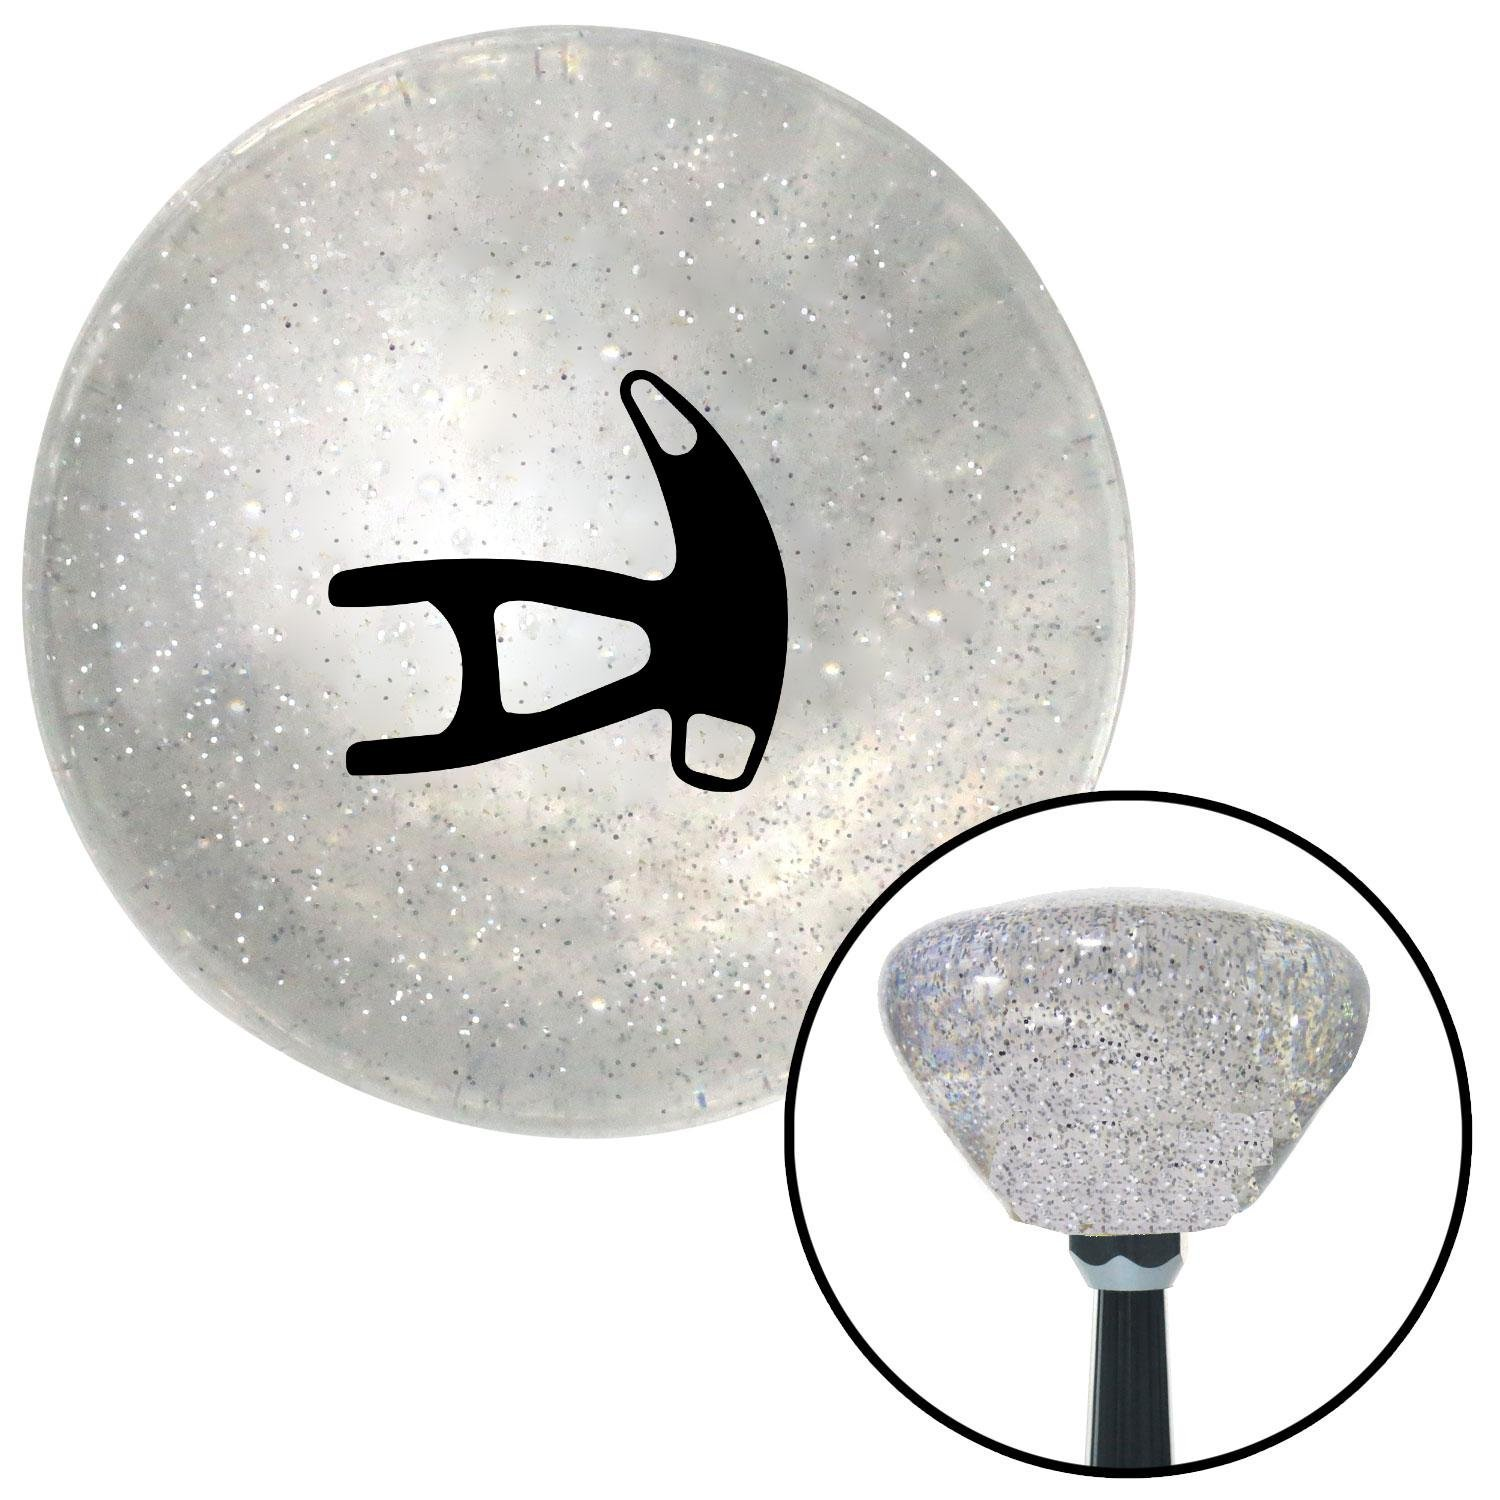 American Shifter 159600 Clear Retro Metal Flake Shift Knob with M16 x 1.5 Insert Black Paddle Shift